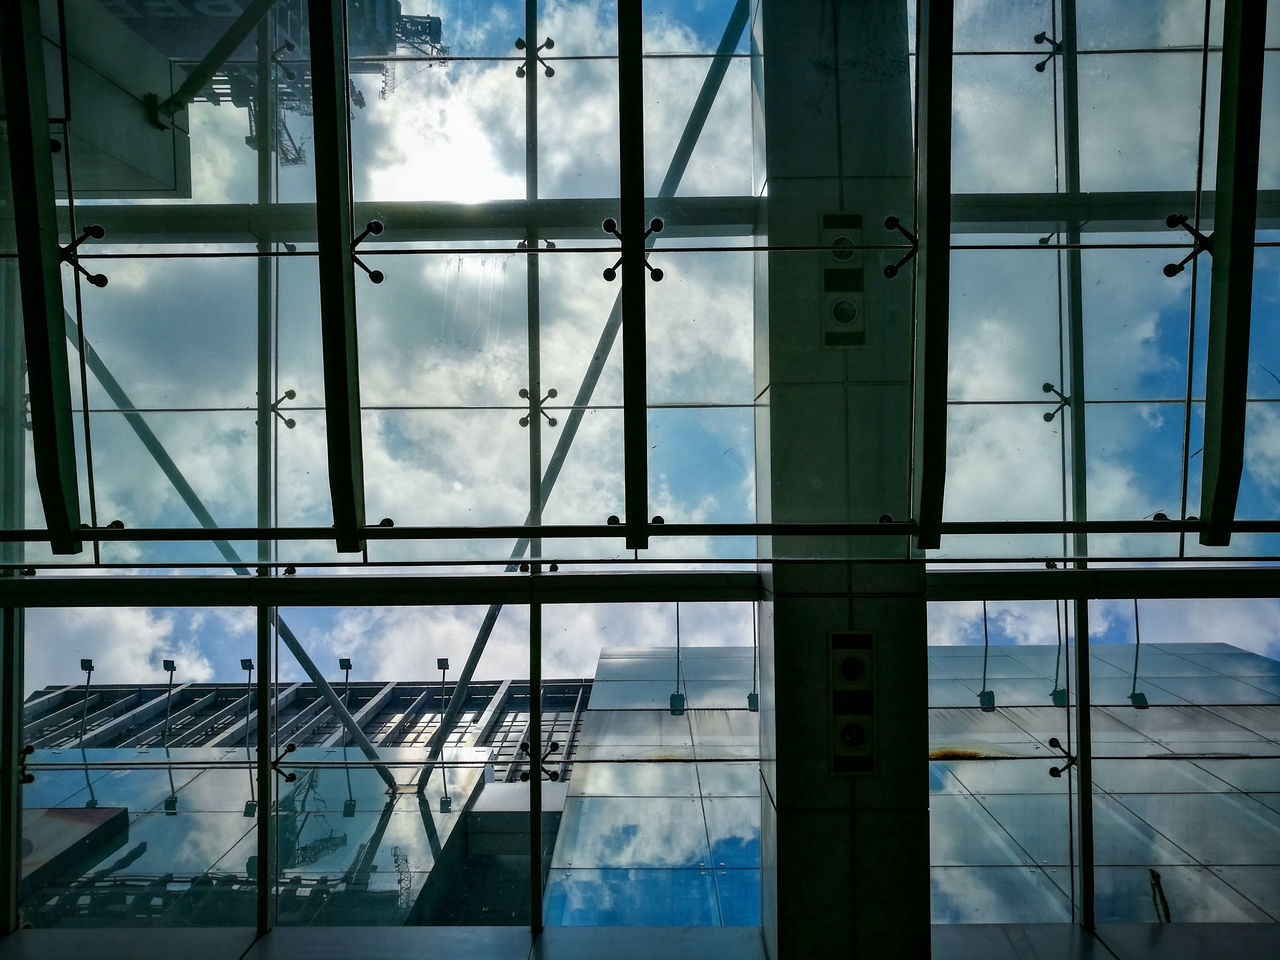 glass - material, window, architecture, indoors, built structure, day, no people, cloud - sky, sky, full frame, close-up